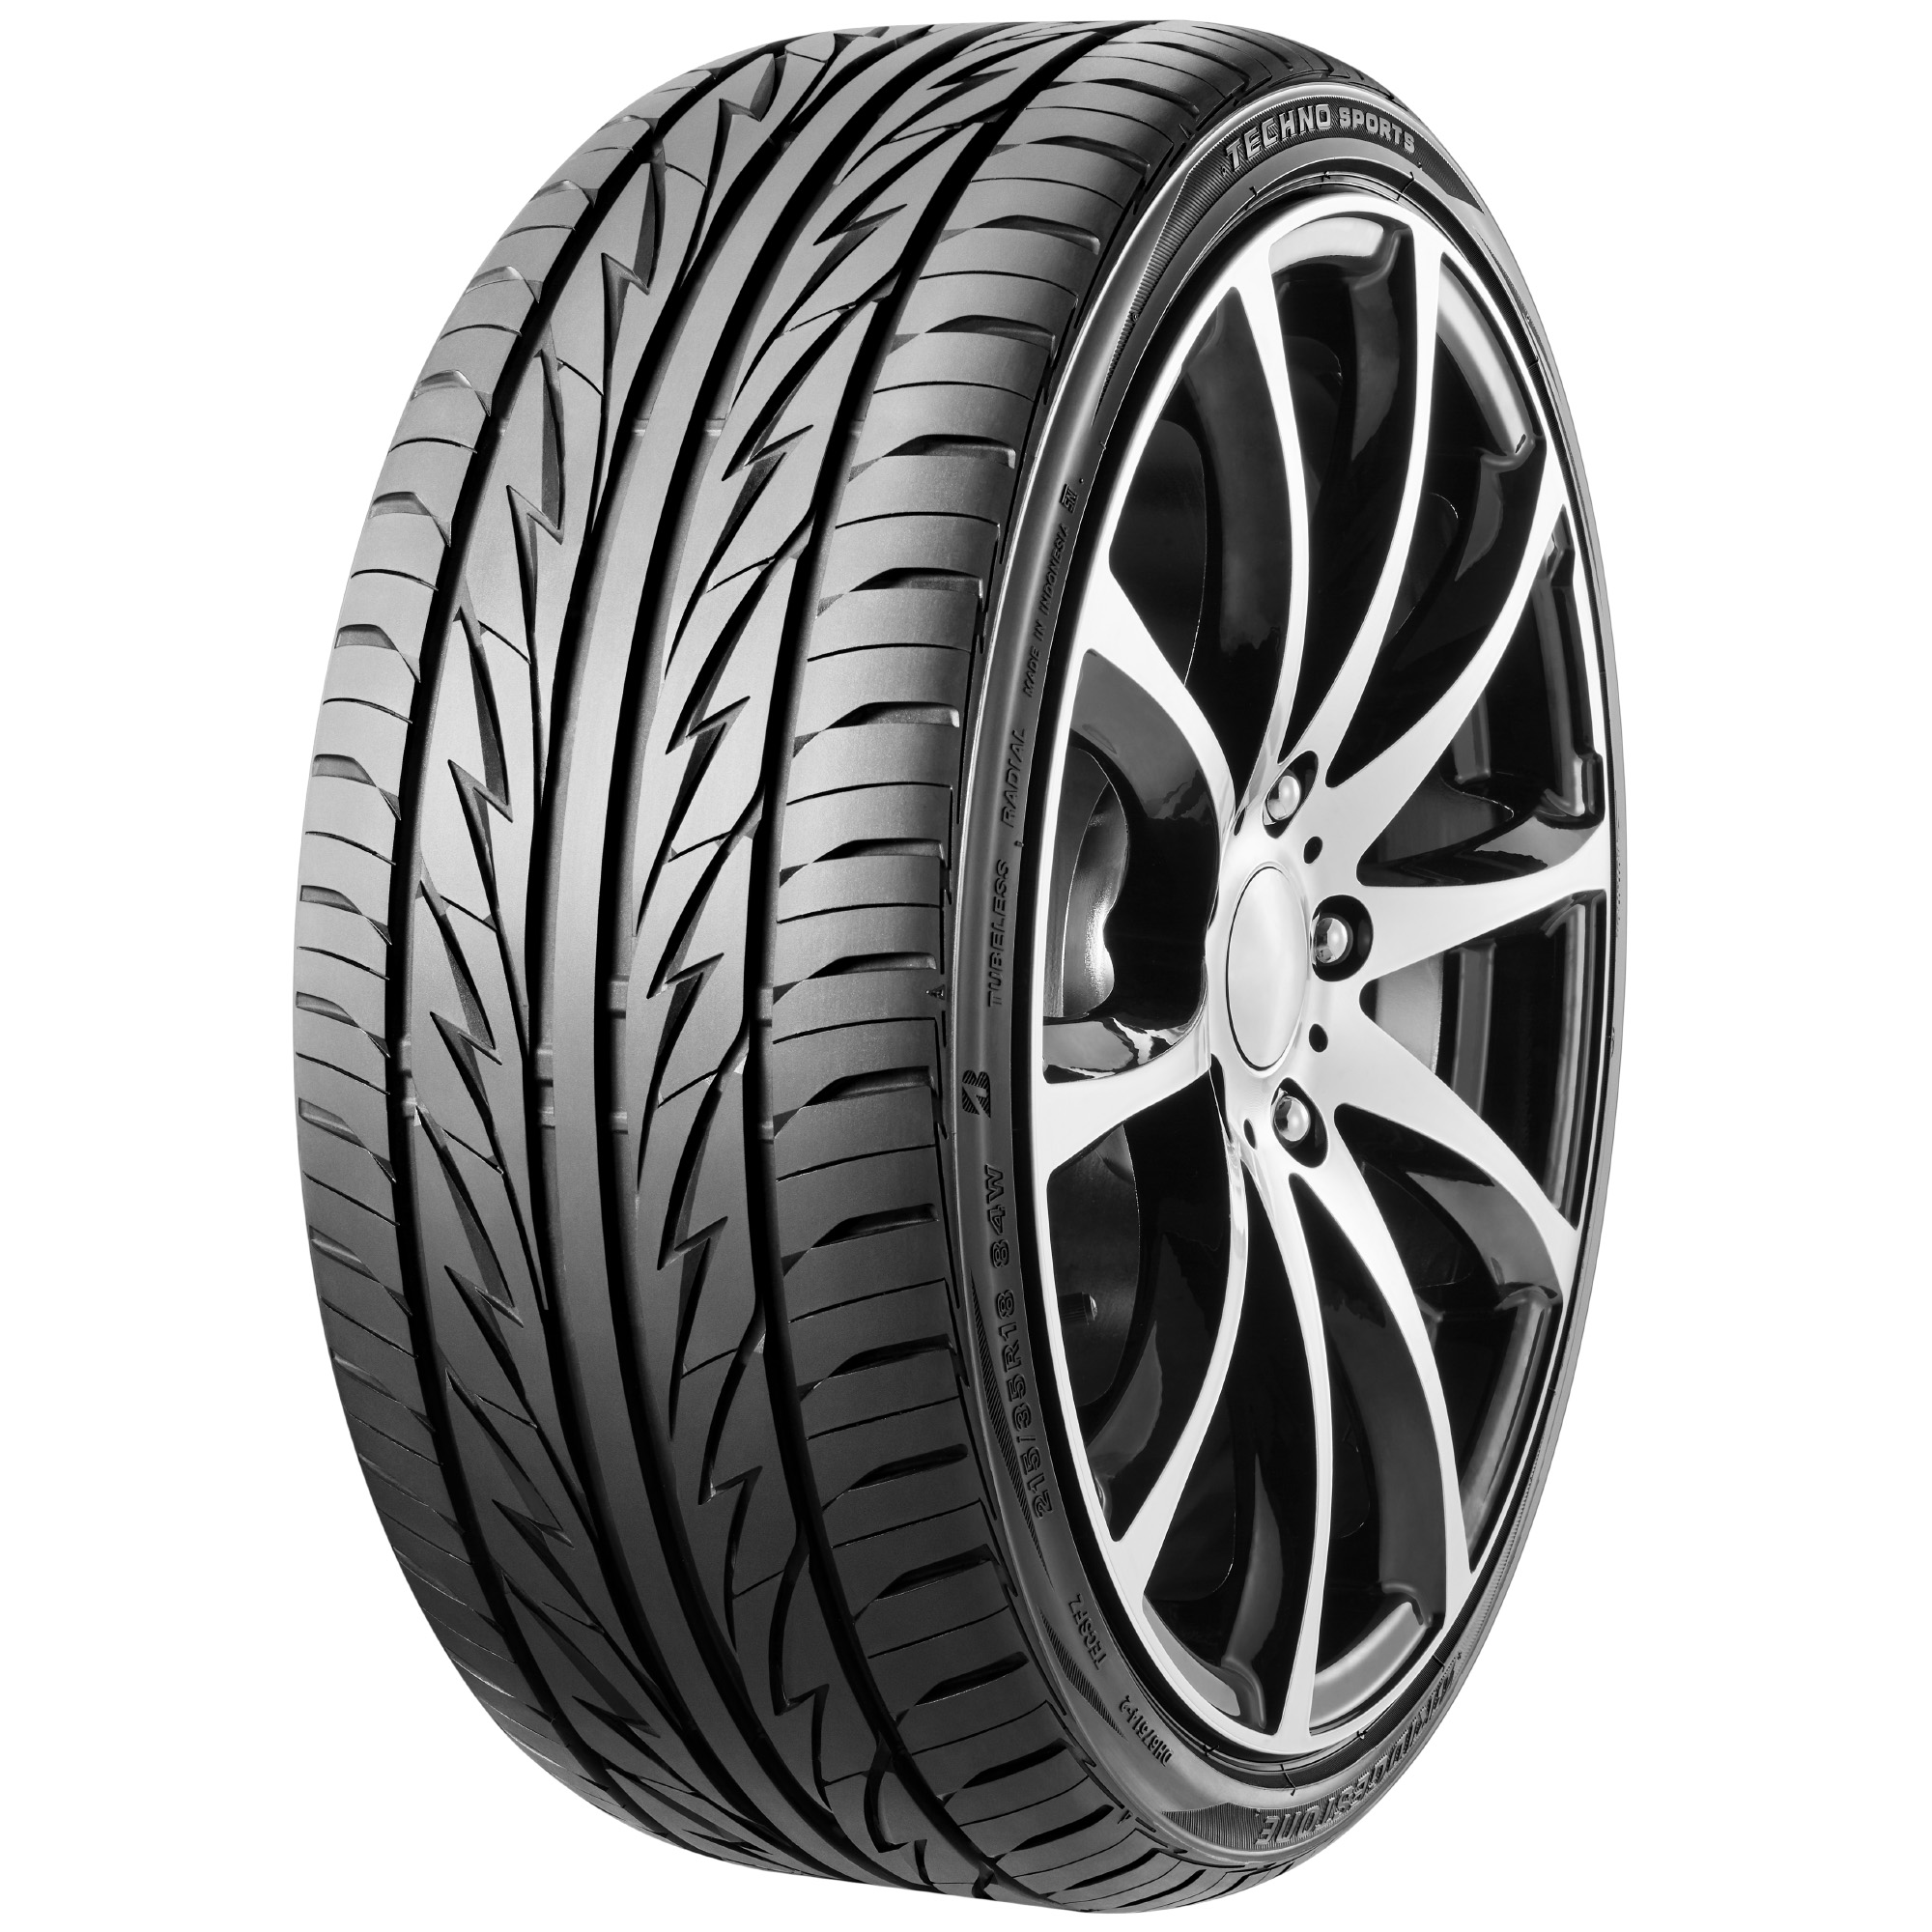 Bridgestone Techno Sport